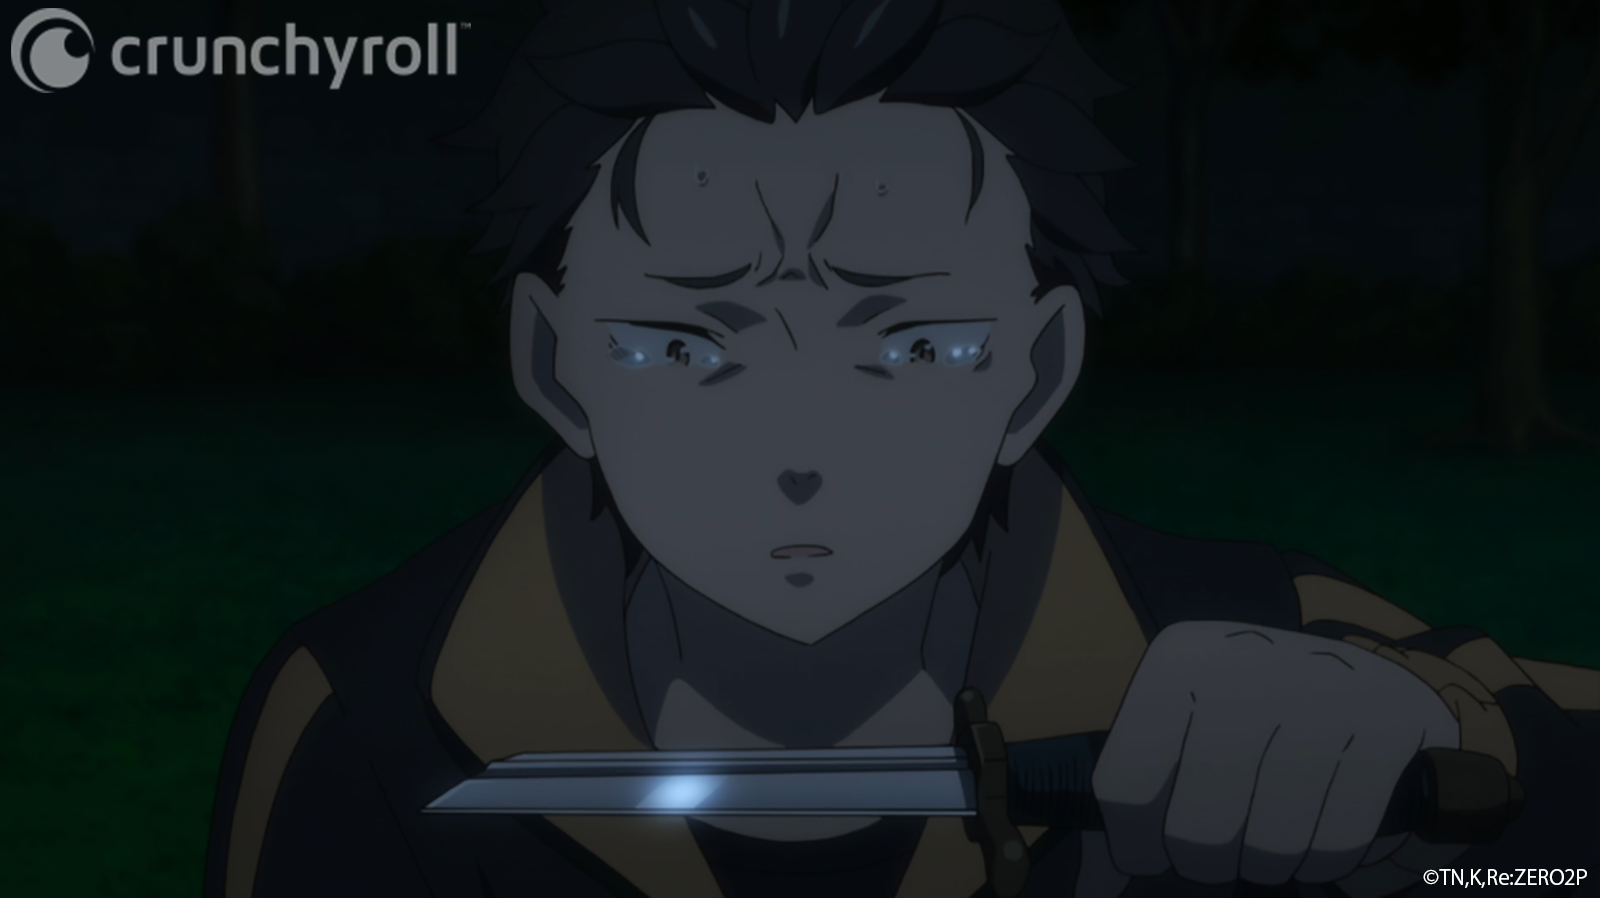 Natsuki Subaru prepares to stab himself in the throat with a broken sword in an effort to reset the timeline in order to save Rem in a scene from the Re:ZERO -Starting Life in Another World- TV anime.